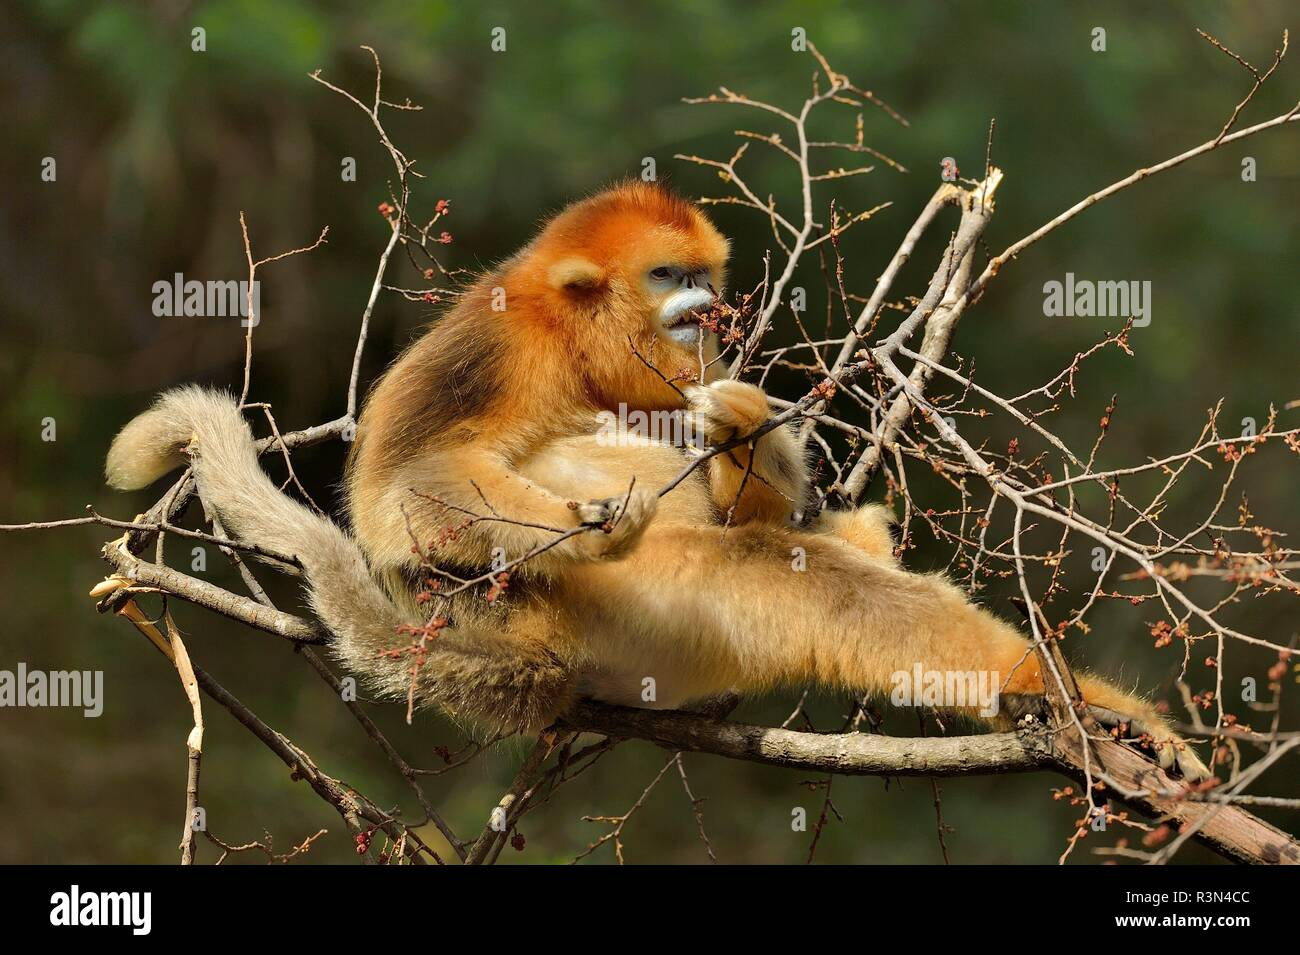 Golden snub-nosed monkey (Pygathrix roxellana) eating on a branch, Shannxi Province, China - Stock Image